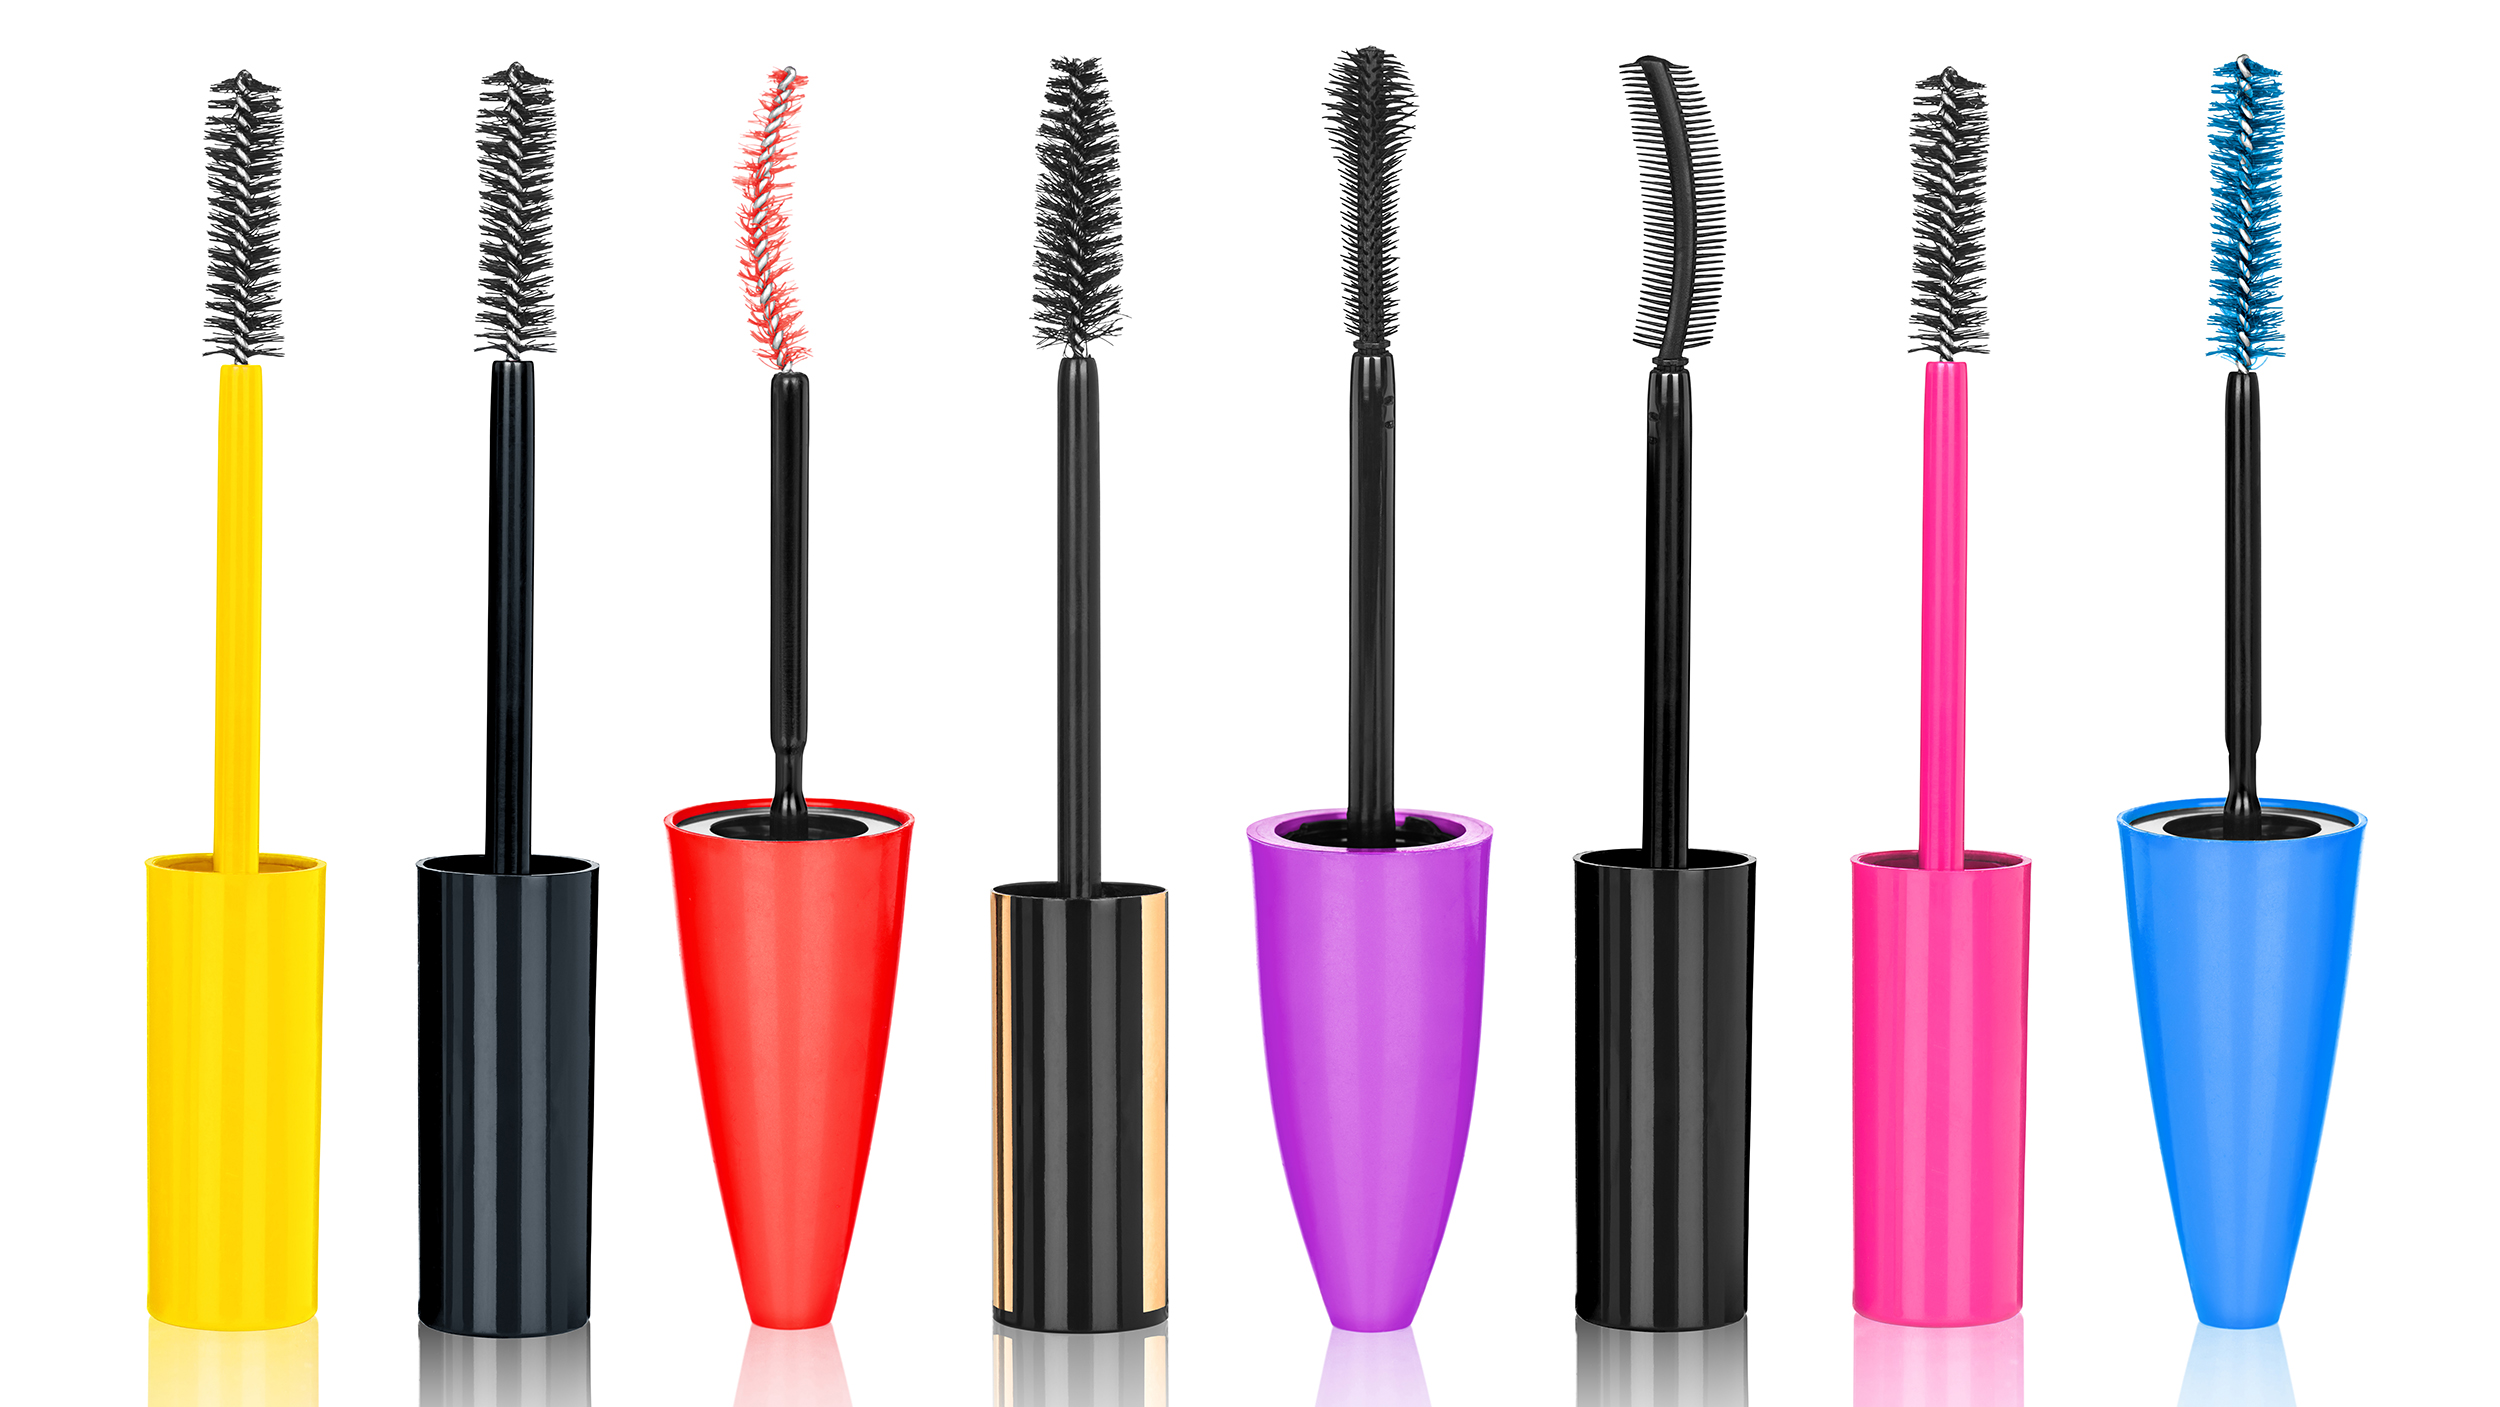 Best mascara guide lengthening volumizing curling and for Mascara with comb wand